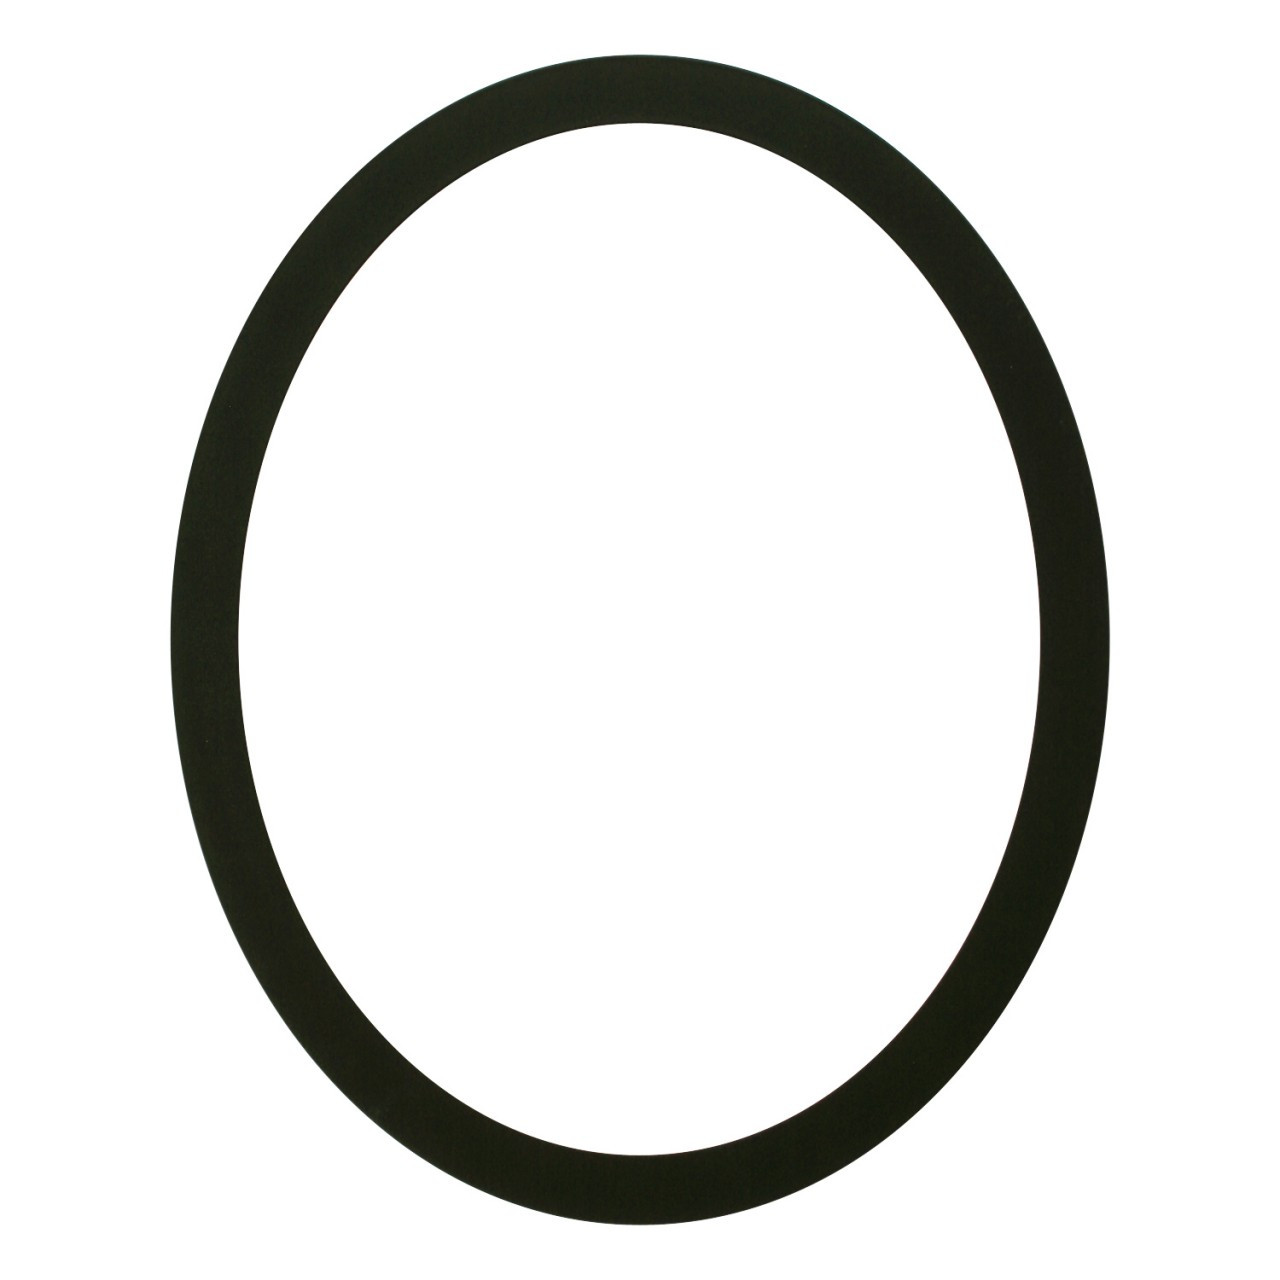 simple oval frame oval frame in matte black finish simple black